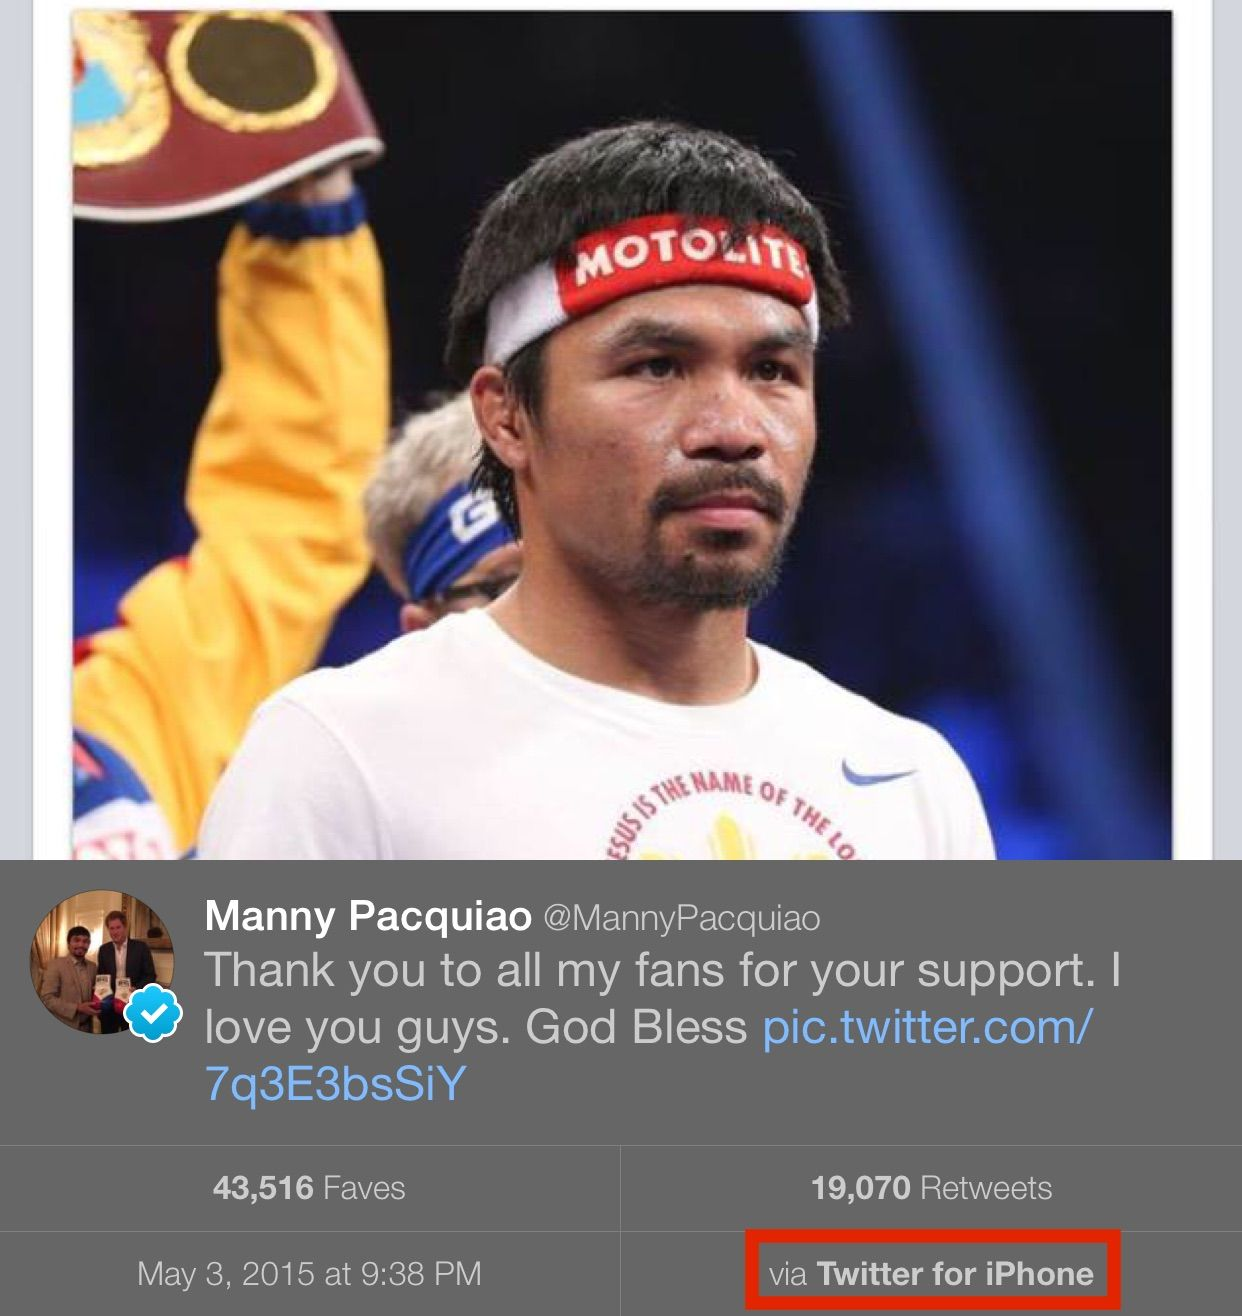 Manny Pacquiao Samsung Galaxy S6 1 - iDevice.ro